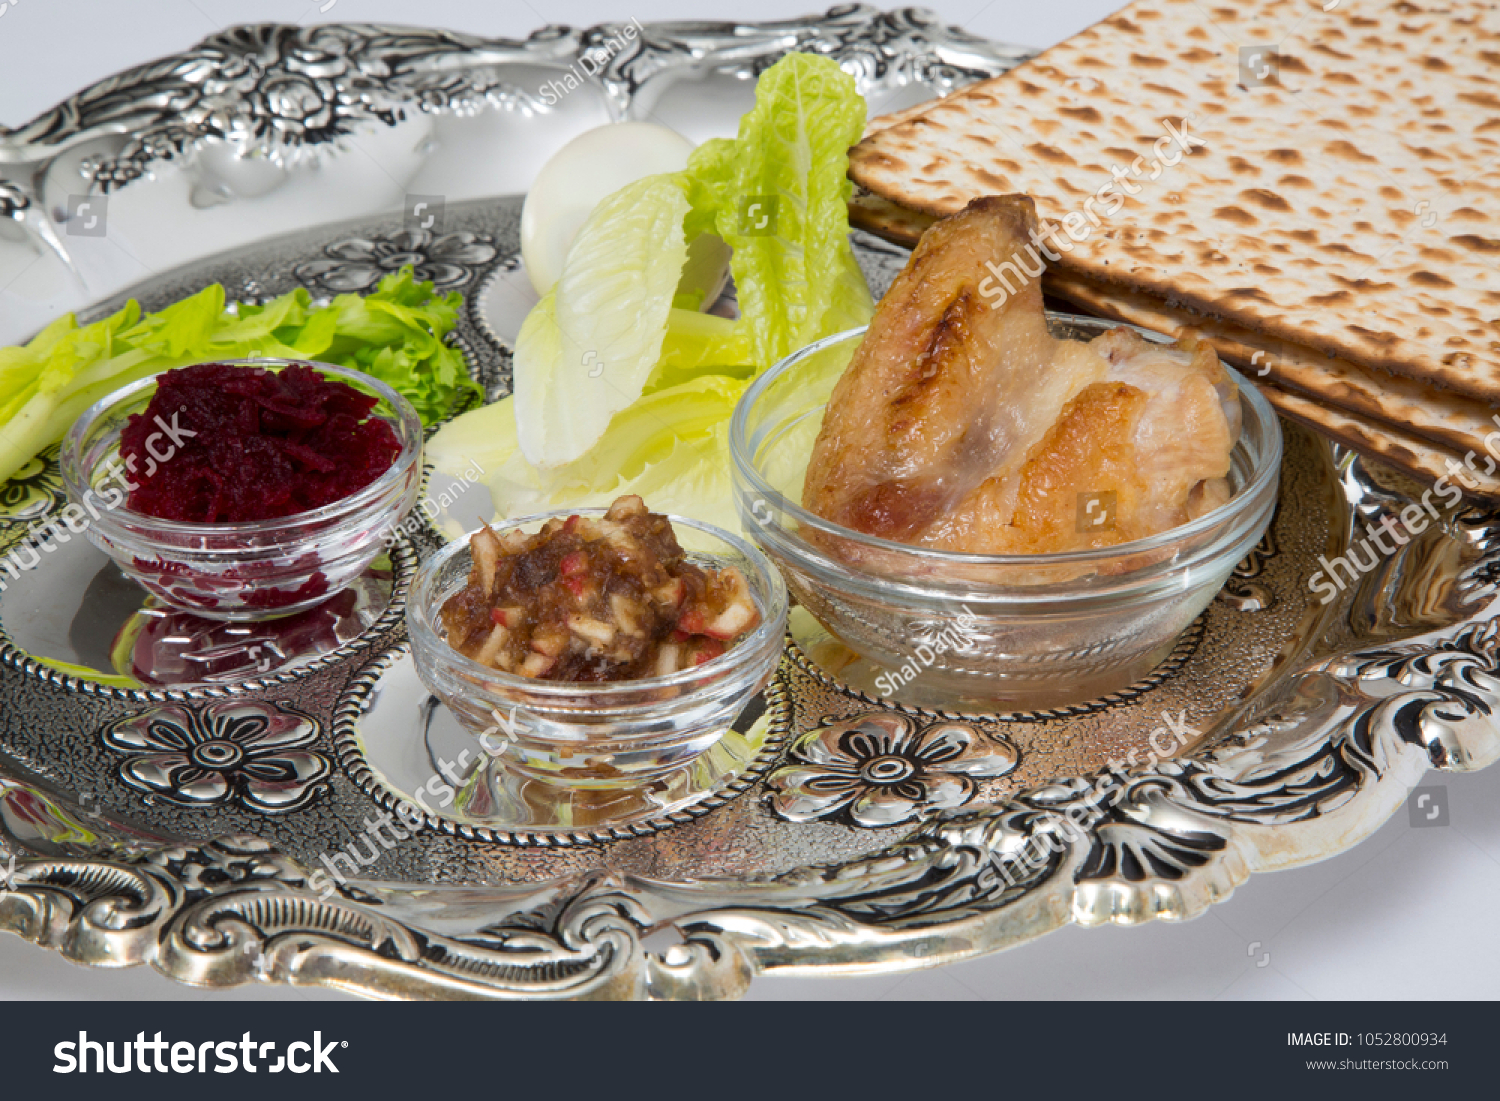 Passover Seder Plate Symbols Pesach Stock Photo Royalty Free